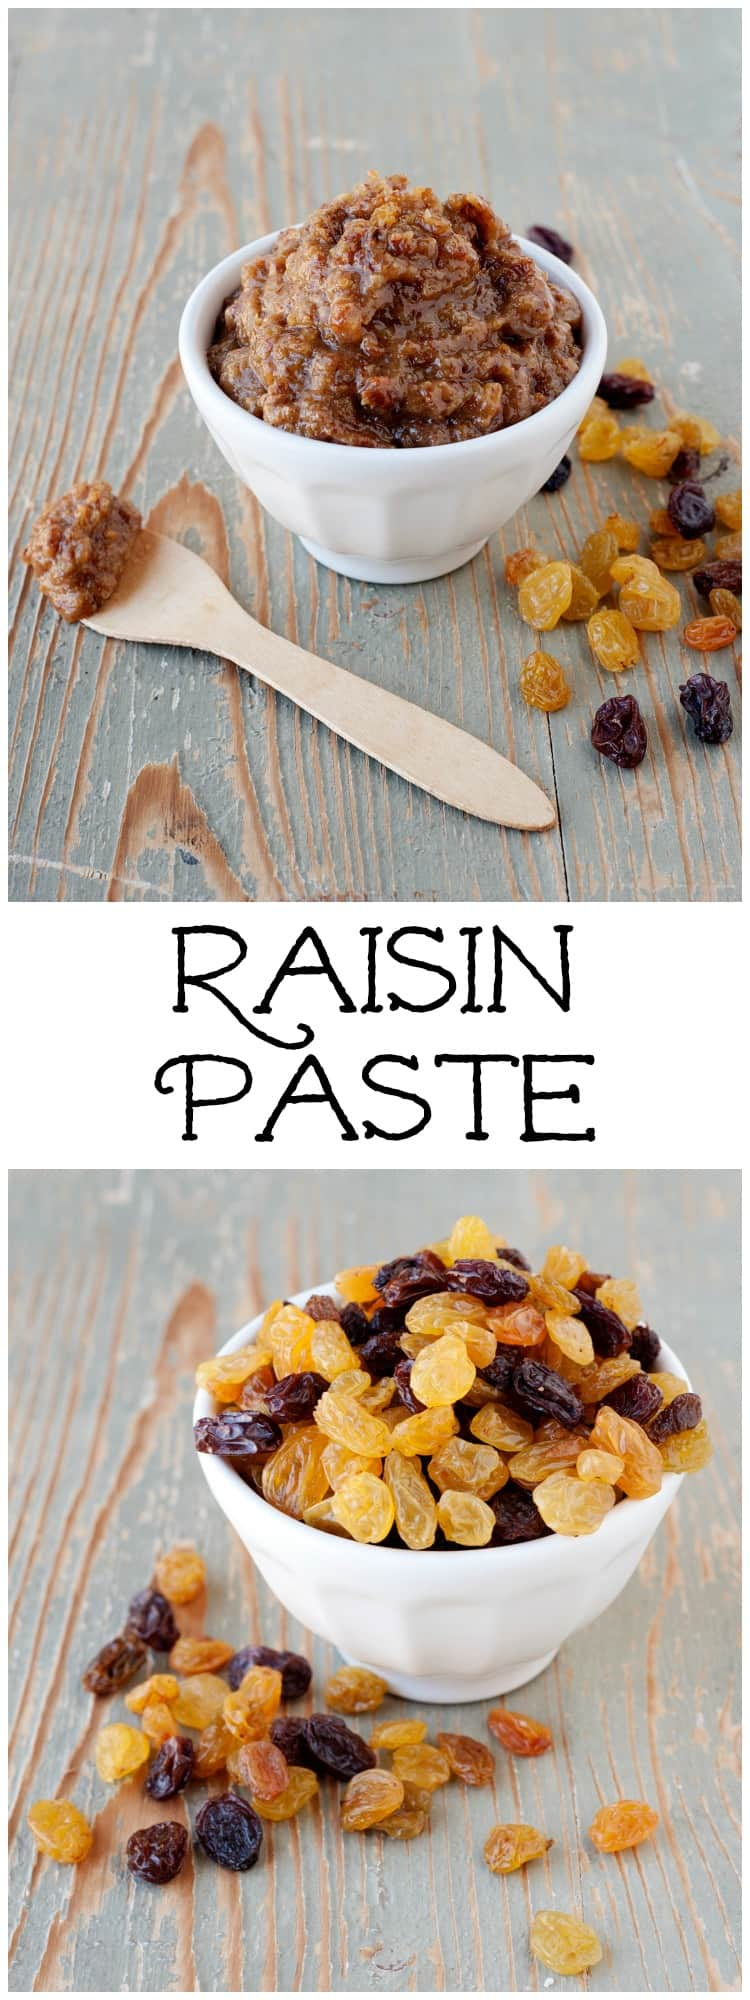 Need a substitute for dates in your smoothies, baking, granola bars, and more? Look no further. Here is how I use raisins to substitute dates.